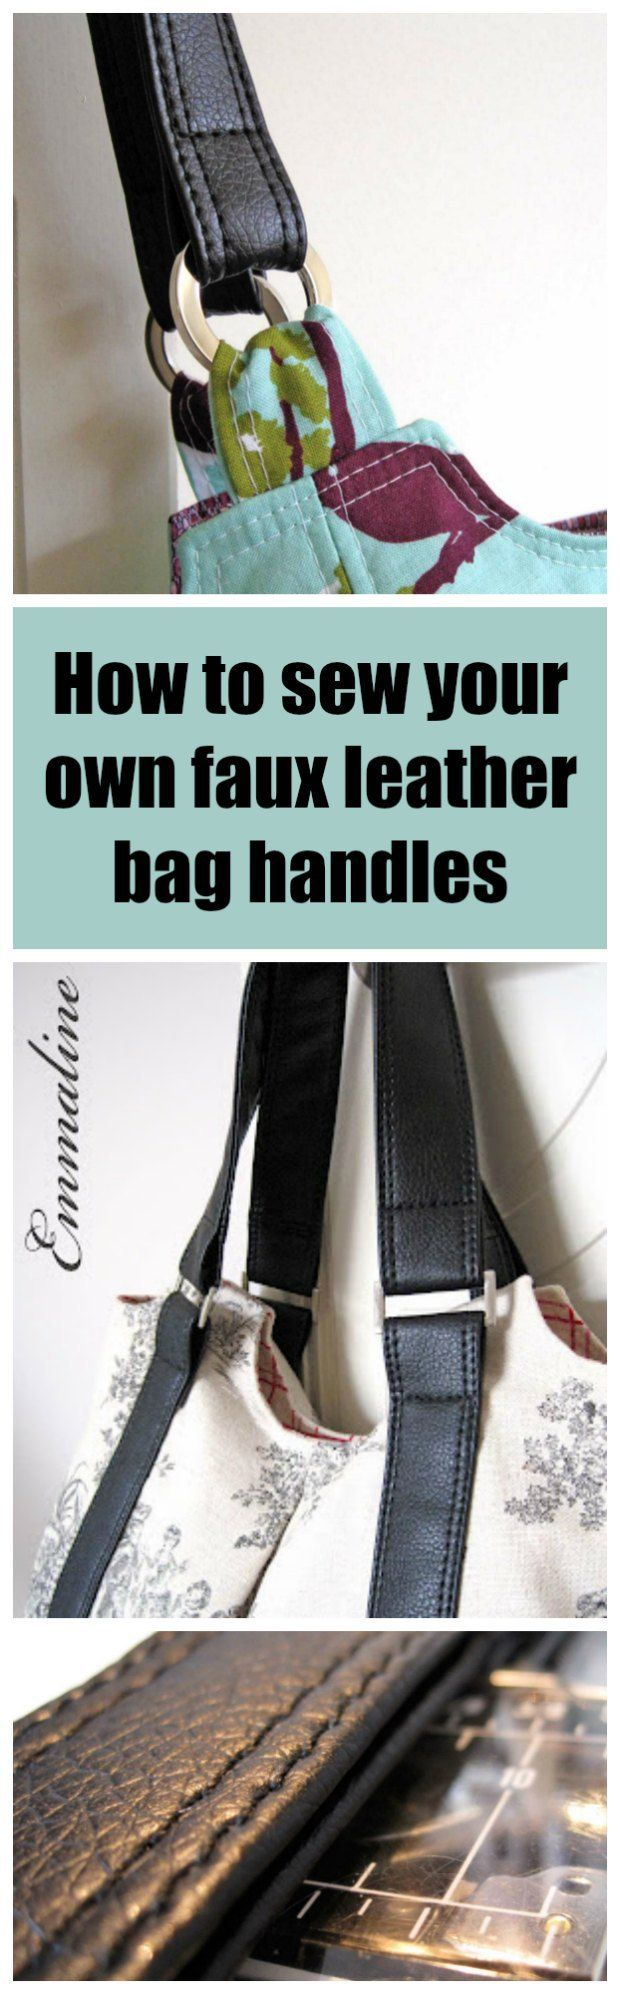 This Is The Ultimate Tutorial For How To Make Your Own Faux Leather Handbag Straps And Handles No Thick Layers Raw Edges Just Perfect Bag